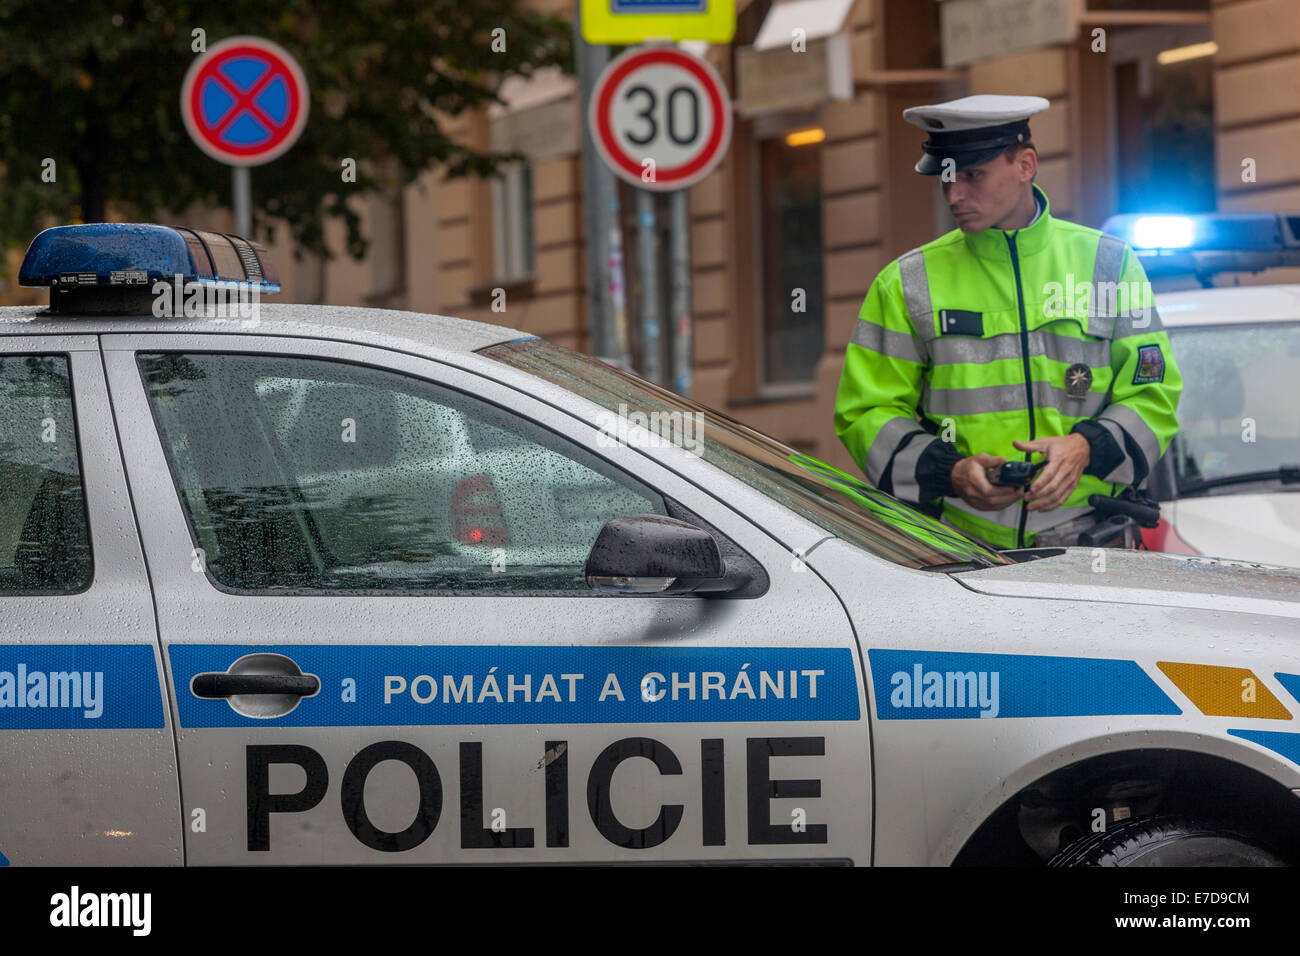 Traffic cop and Czech police car, Prague Czech Republic - Stock Image